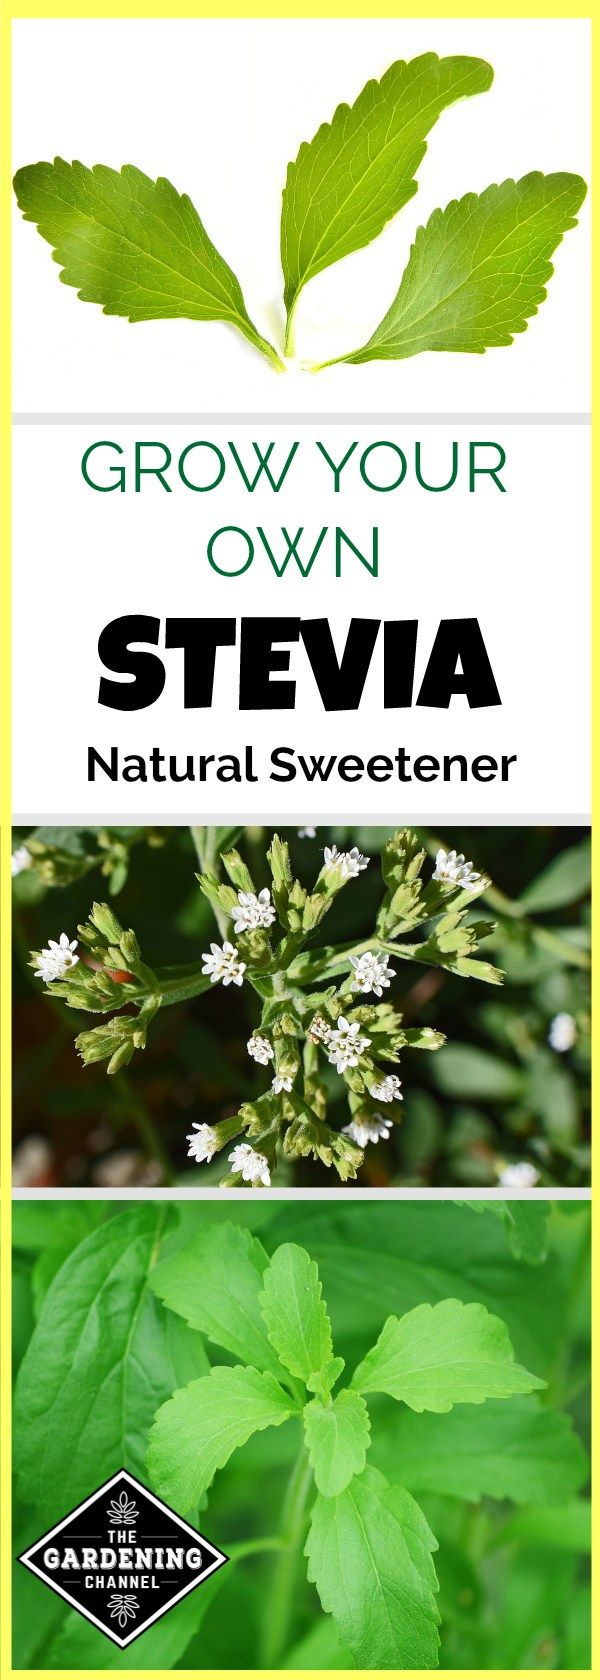 Learn how to grow your own stevia in the garden. Don't miss these gardening tips on planting and using stevia as a natural sweetener.